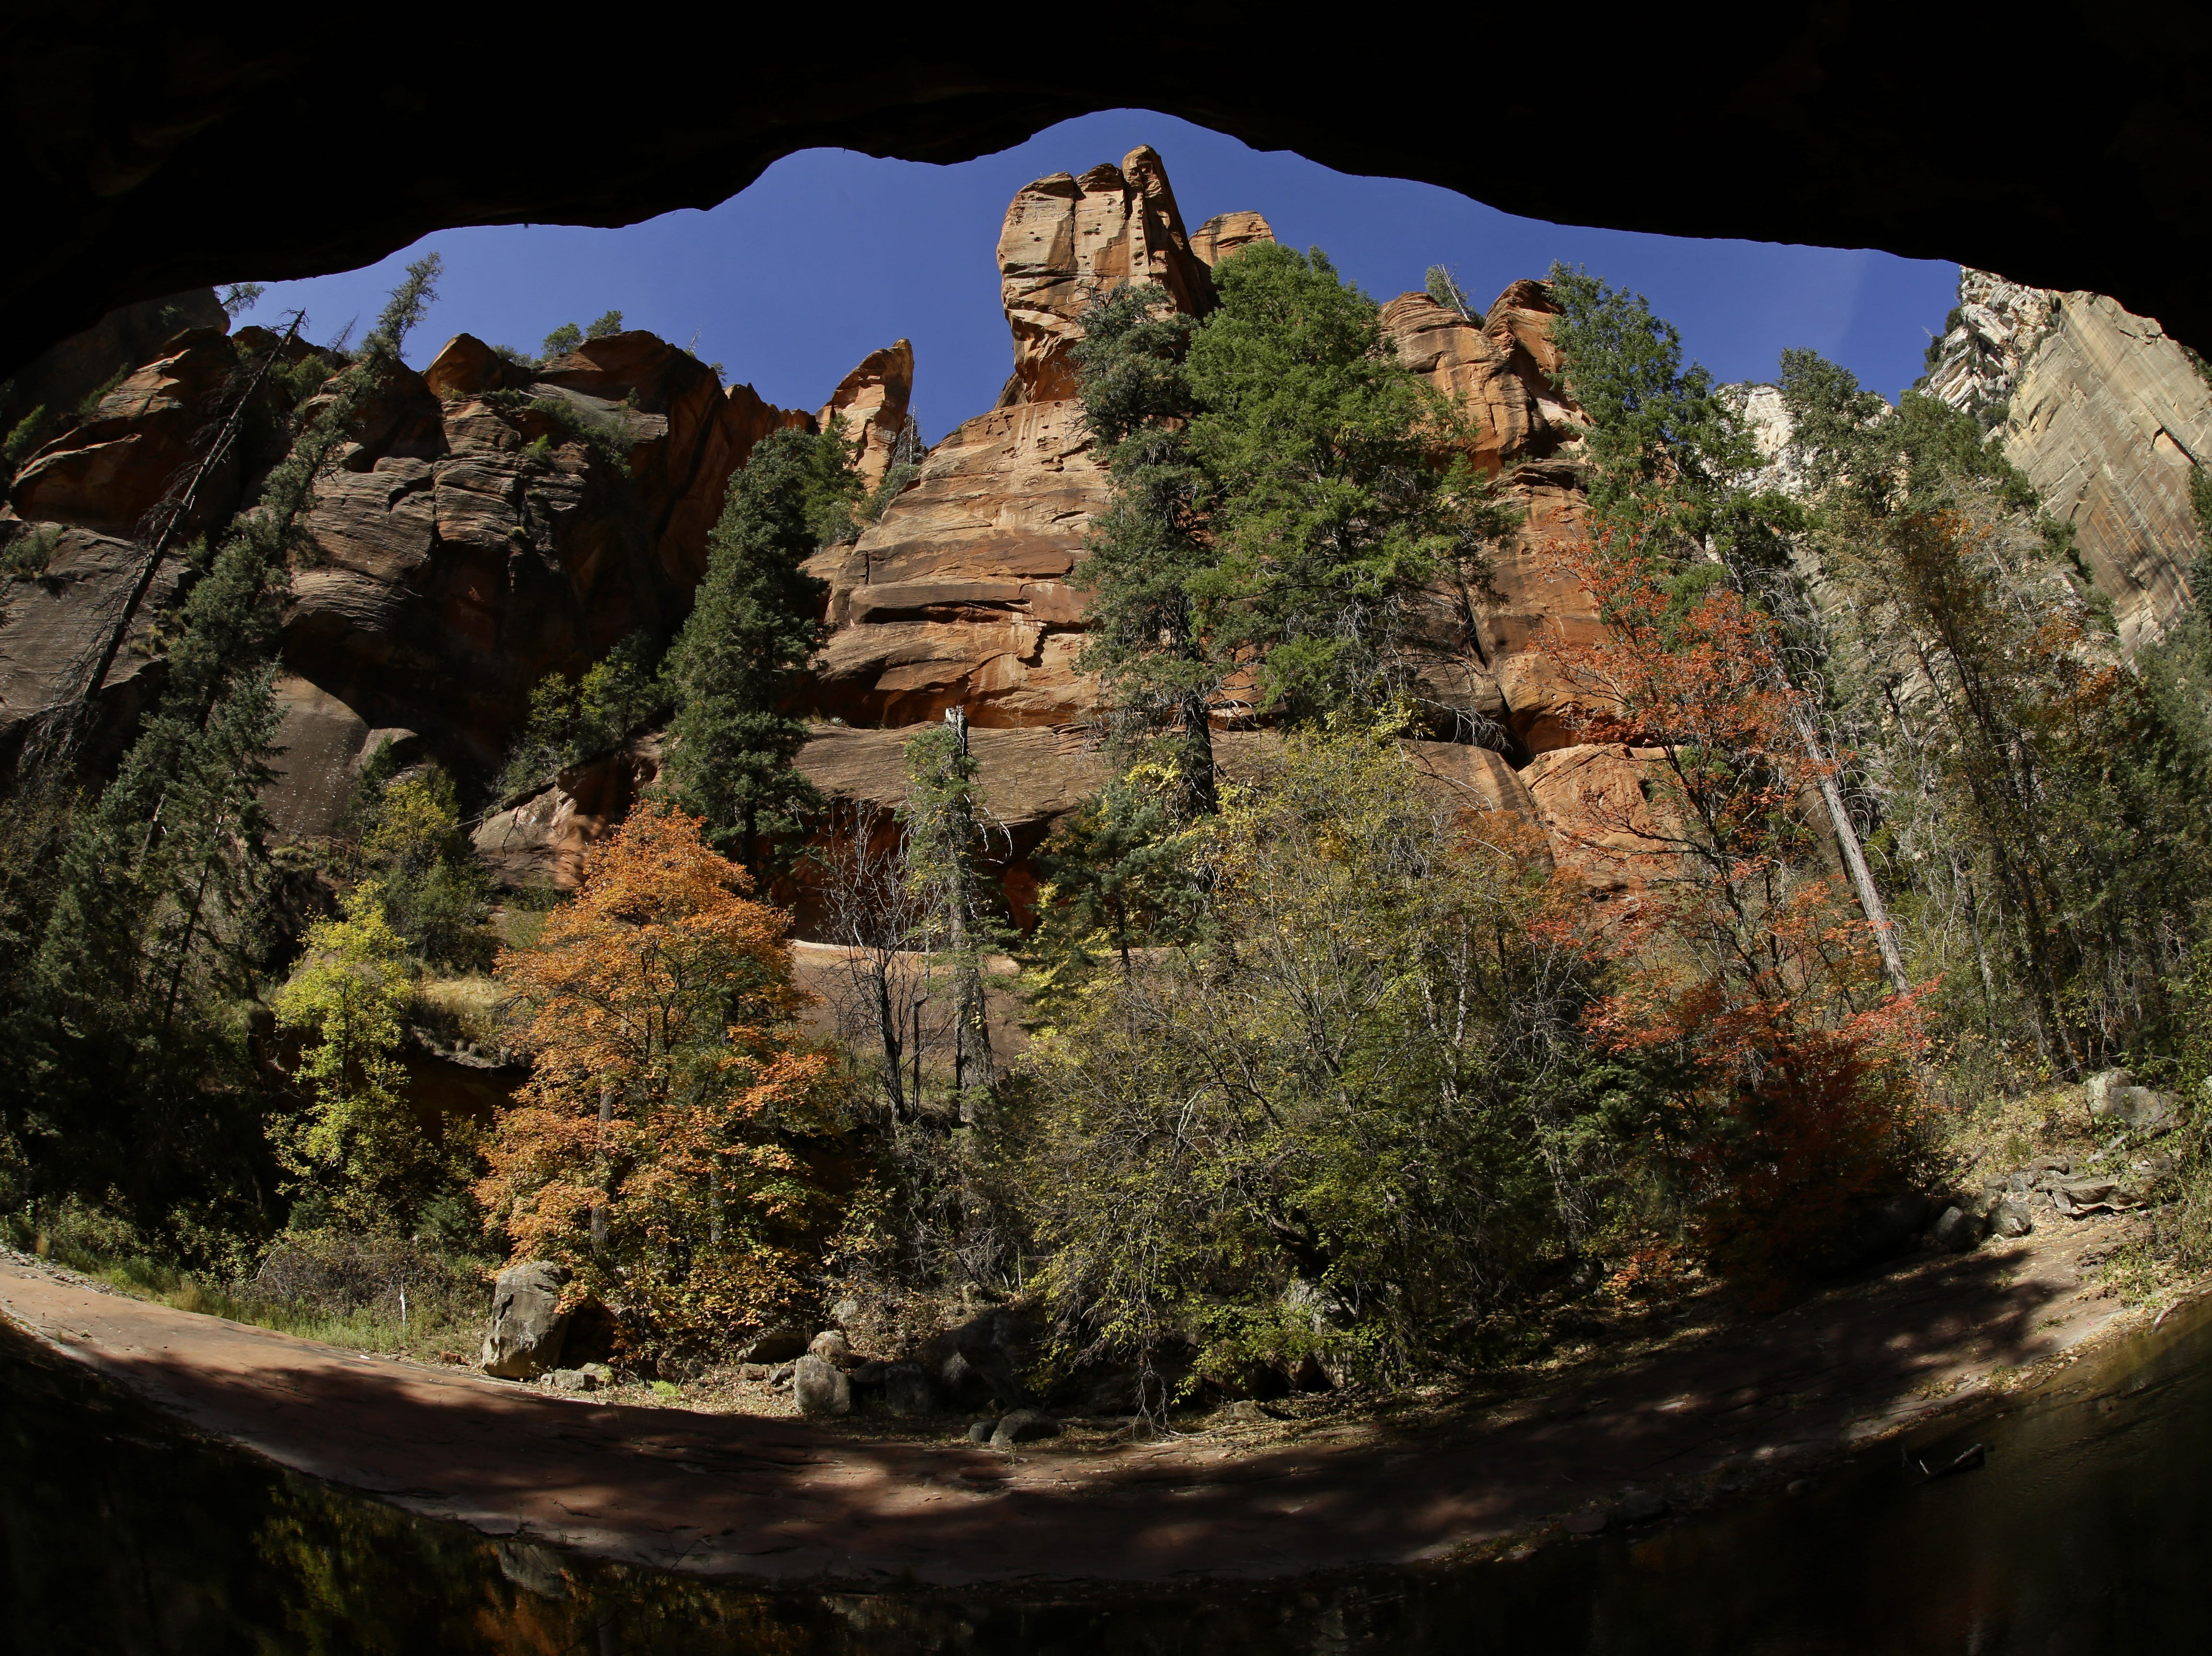 Red rock canyon walls tower above the fall colors on the West Fork Trail at Oak Creek Canyon on Oct. 17, 2017 north of Sedona, Ariz.